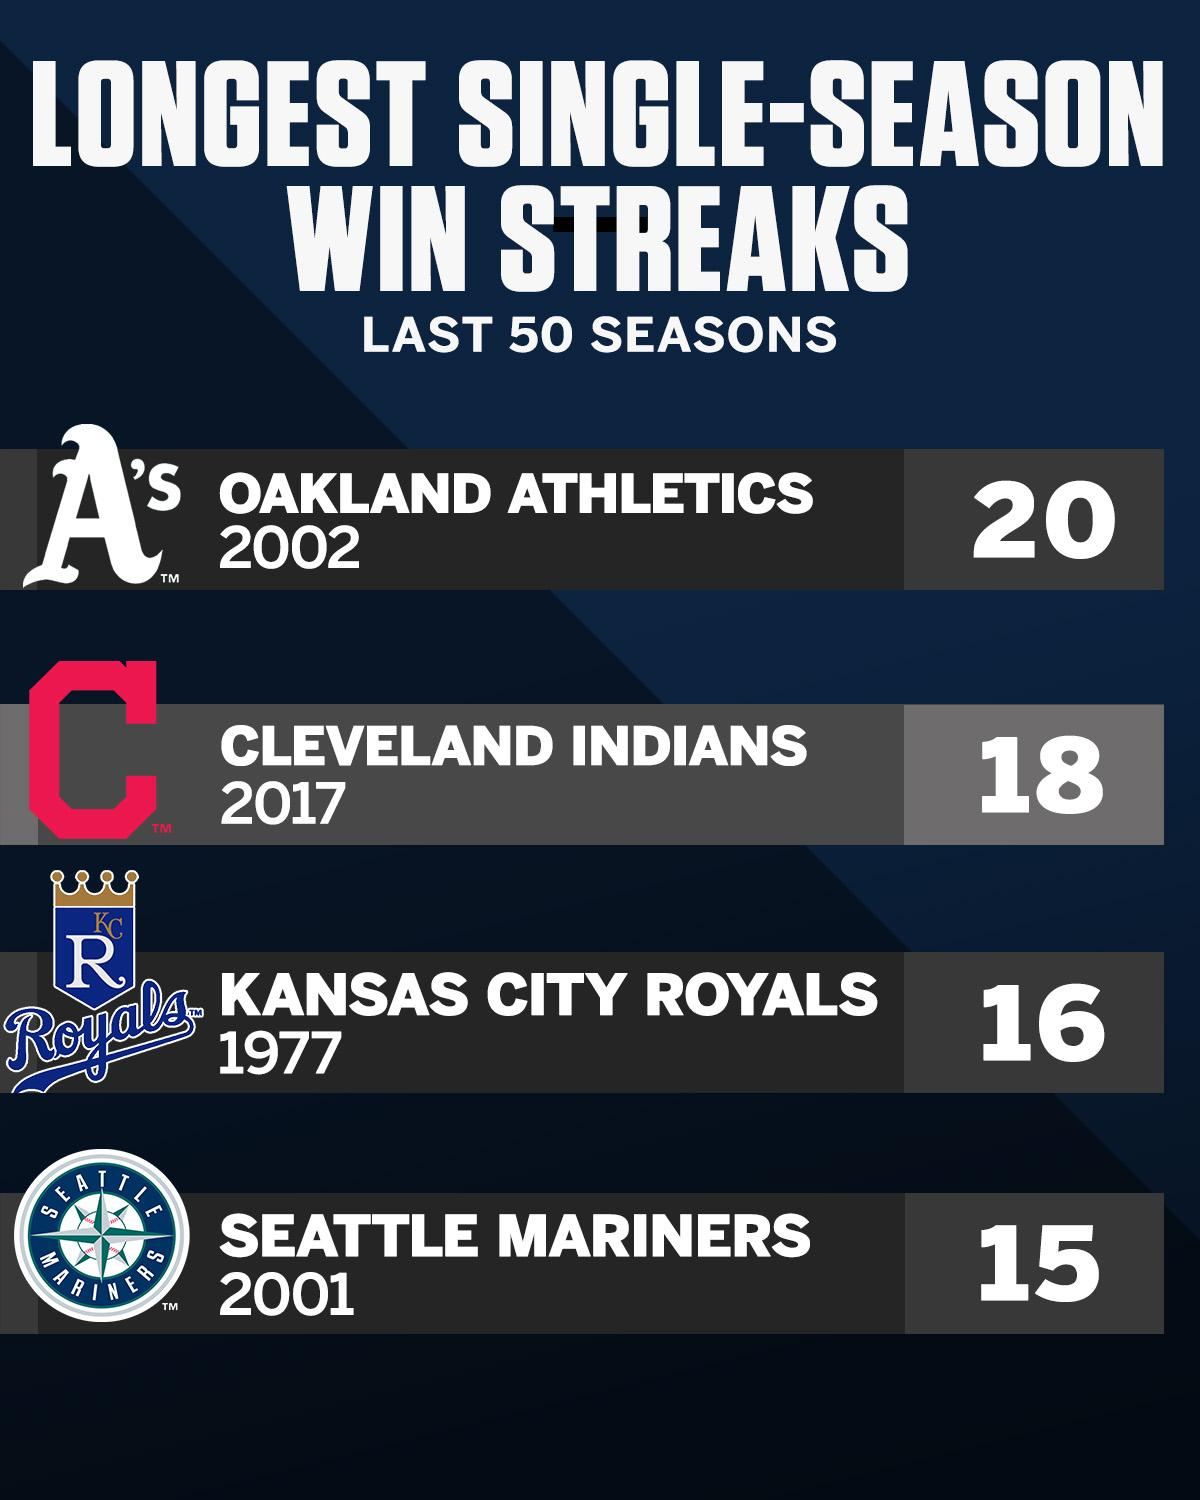 The Indians are just 3 wins away from passing the 'Moneyball' A's. https://t.co/awrdukRoB0